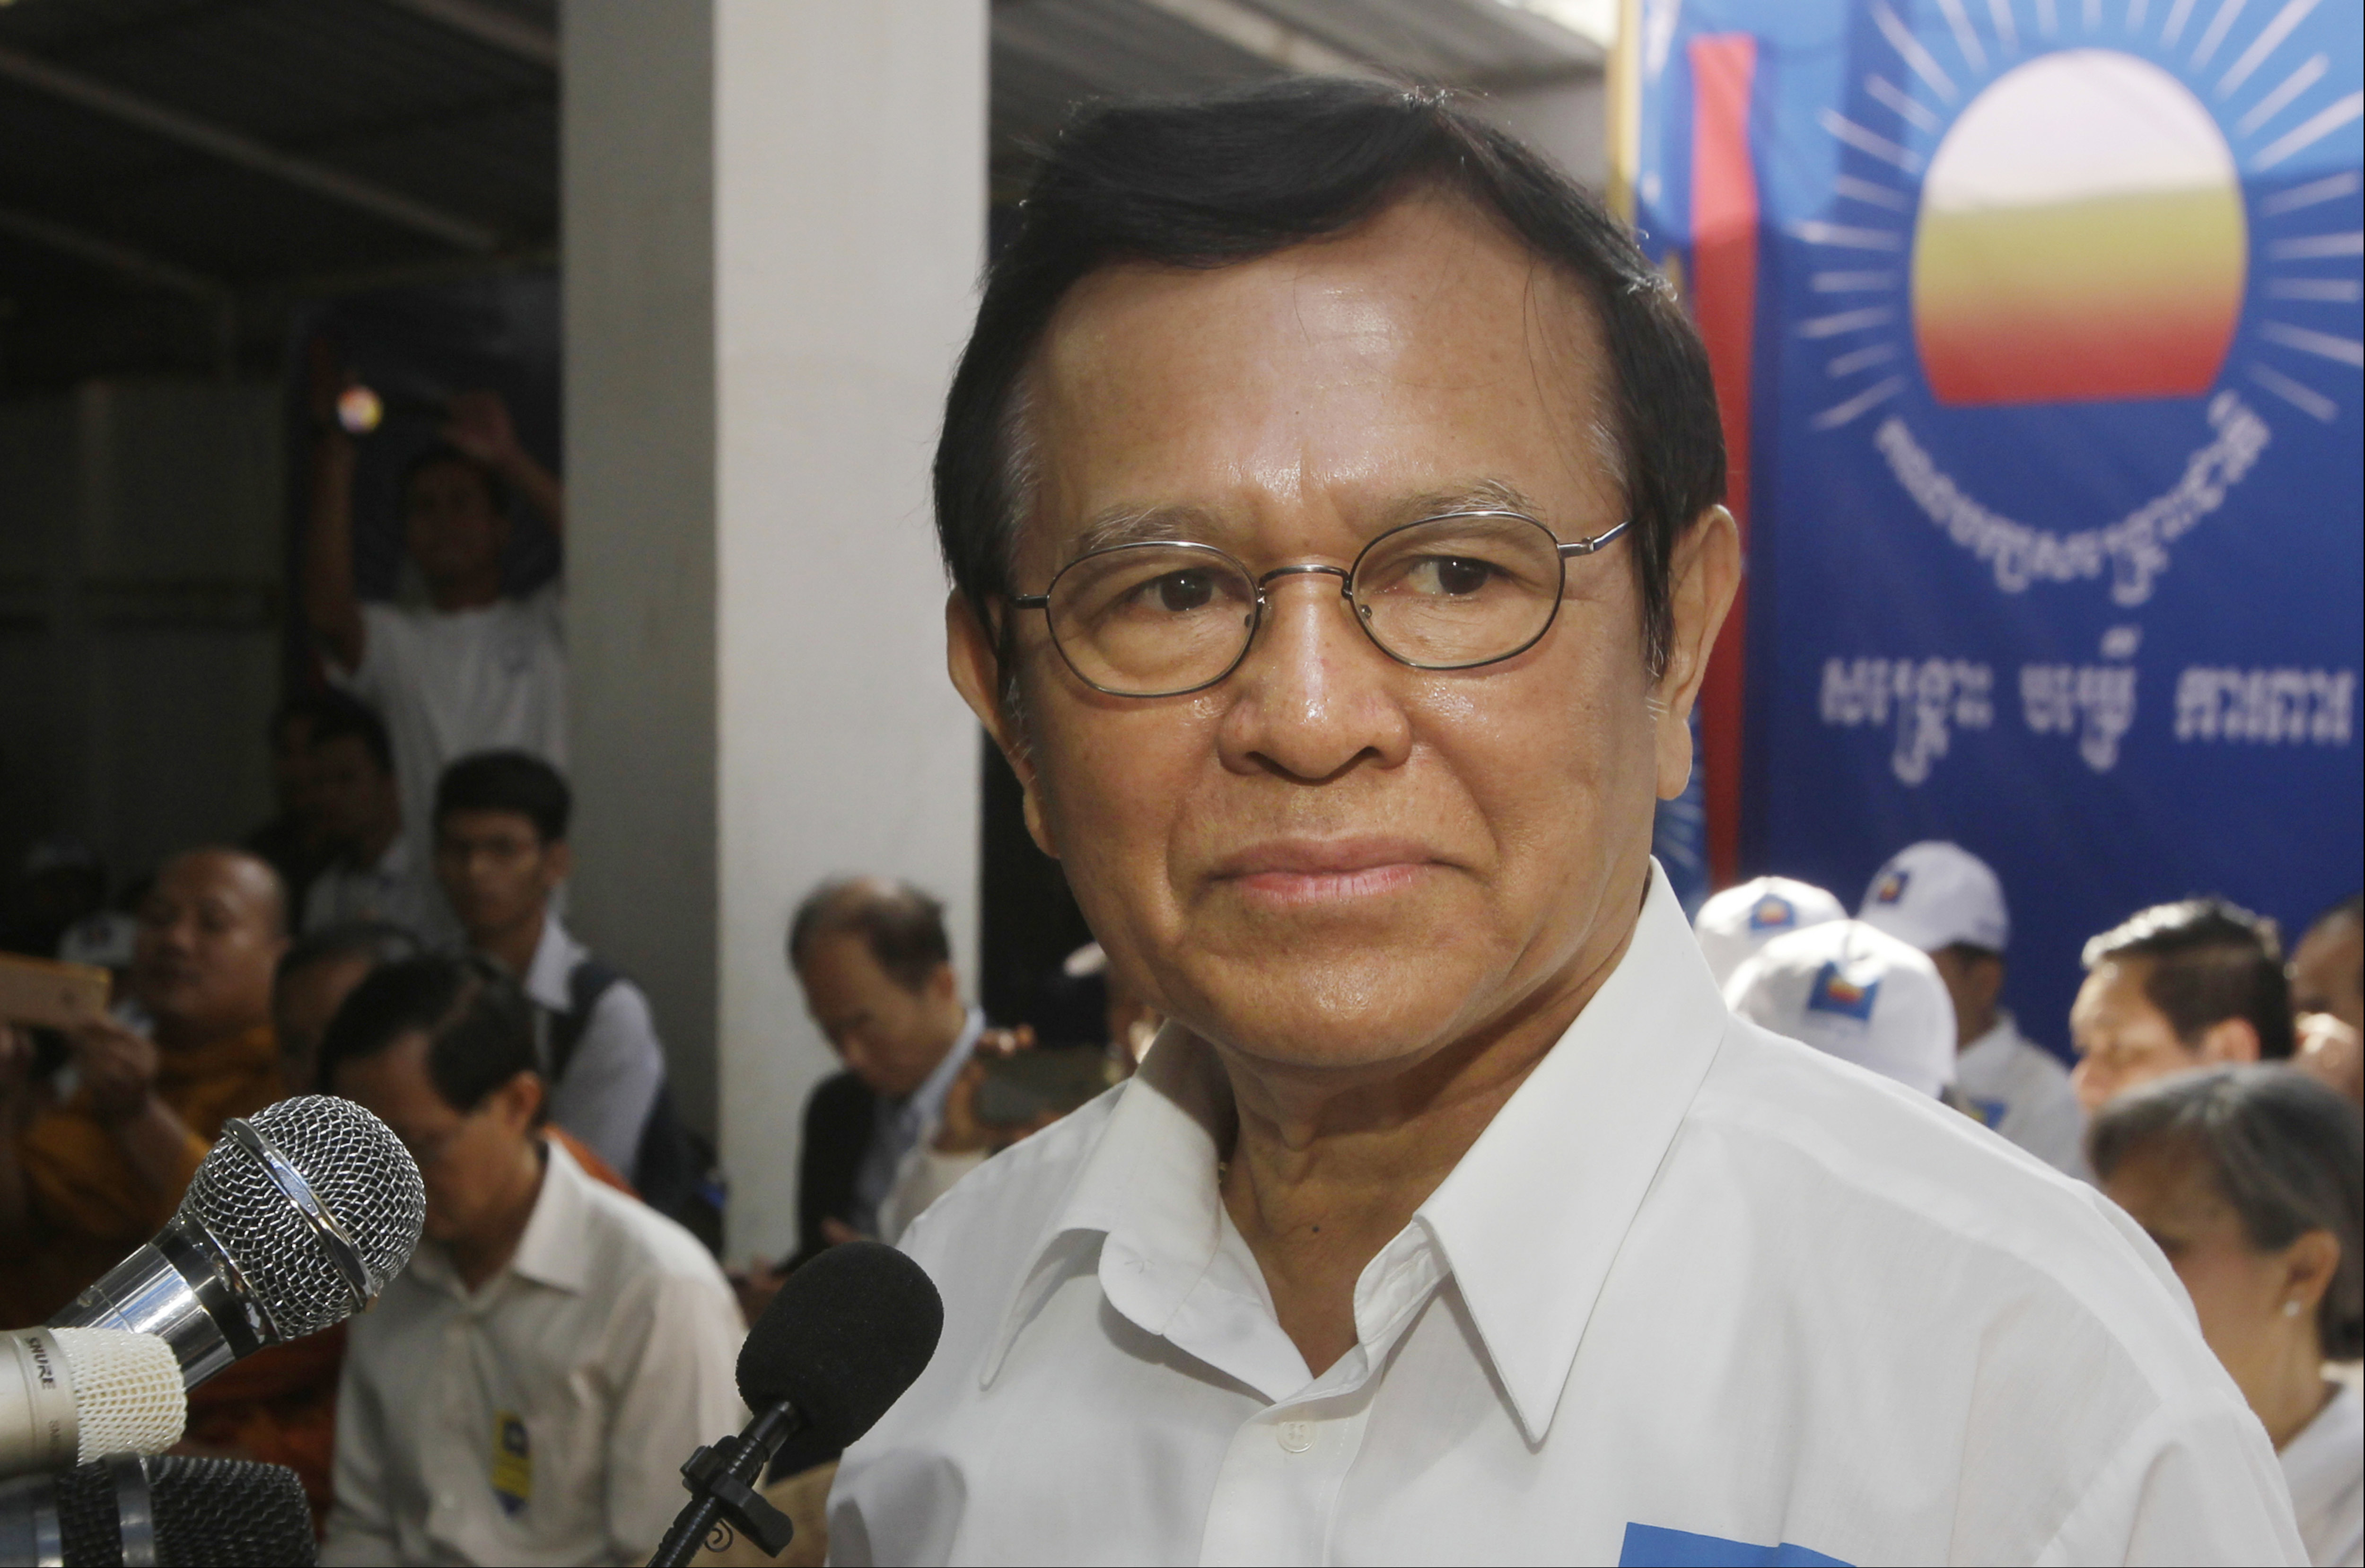 FILE - Opposition party Cambodia National Rescue Party (CNRP) President Kem Sokha adressess party supporters during the party's political congress in Phnom Penh, Cambodia, March 2, 2017.